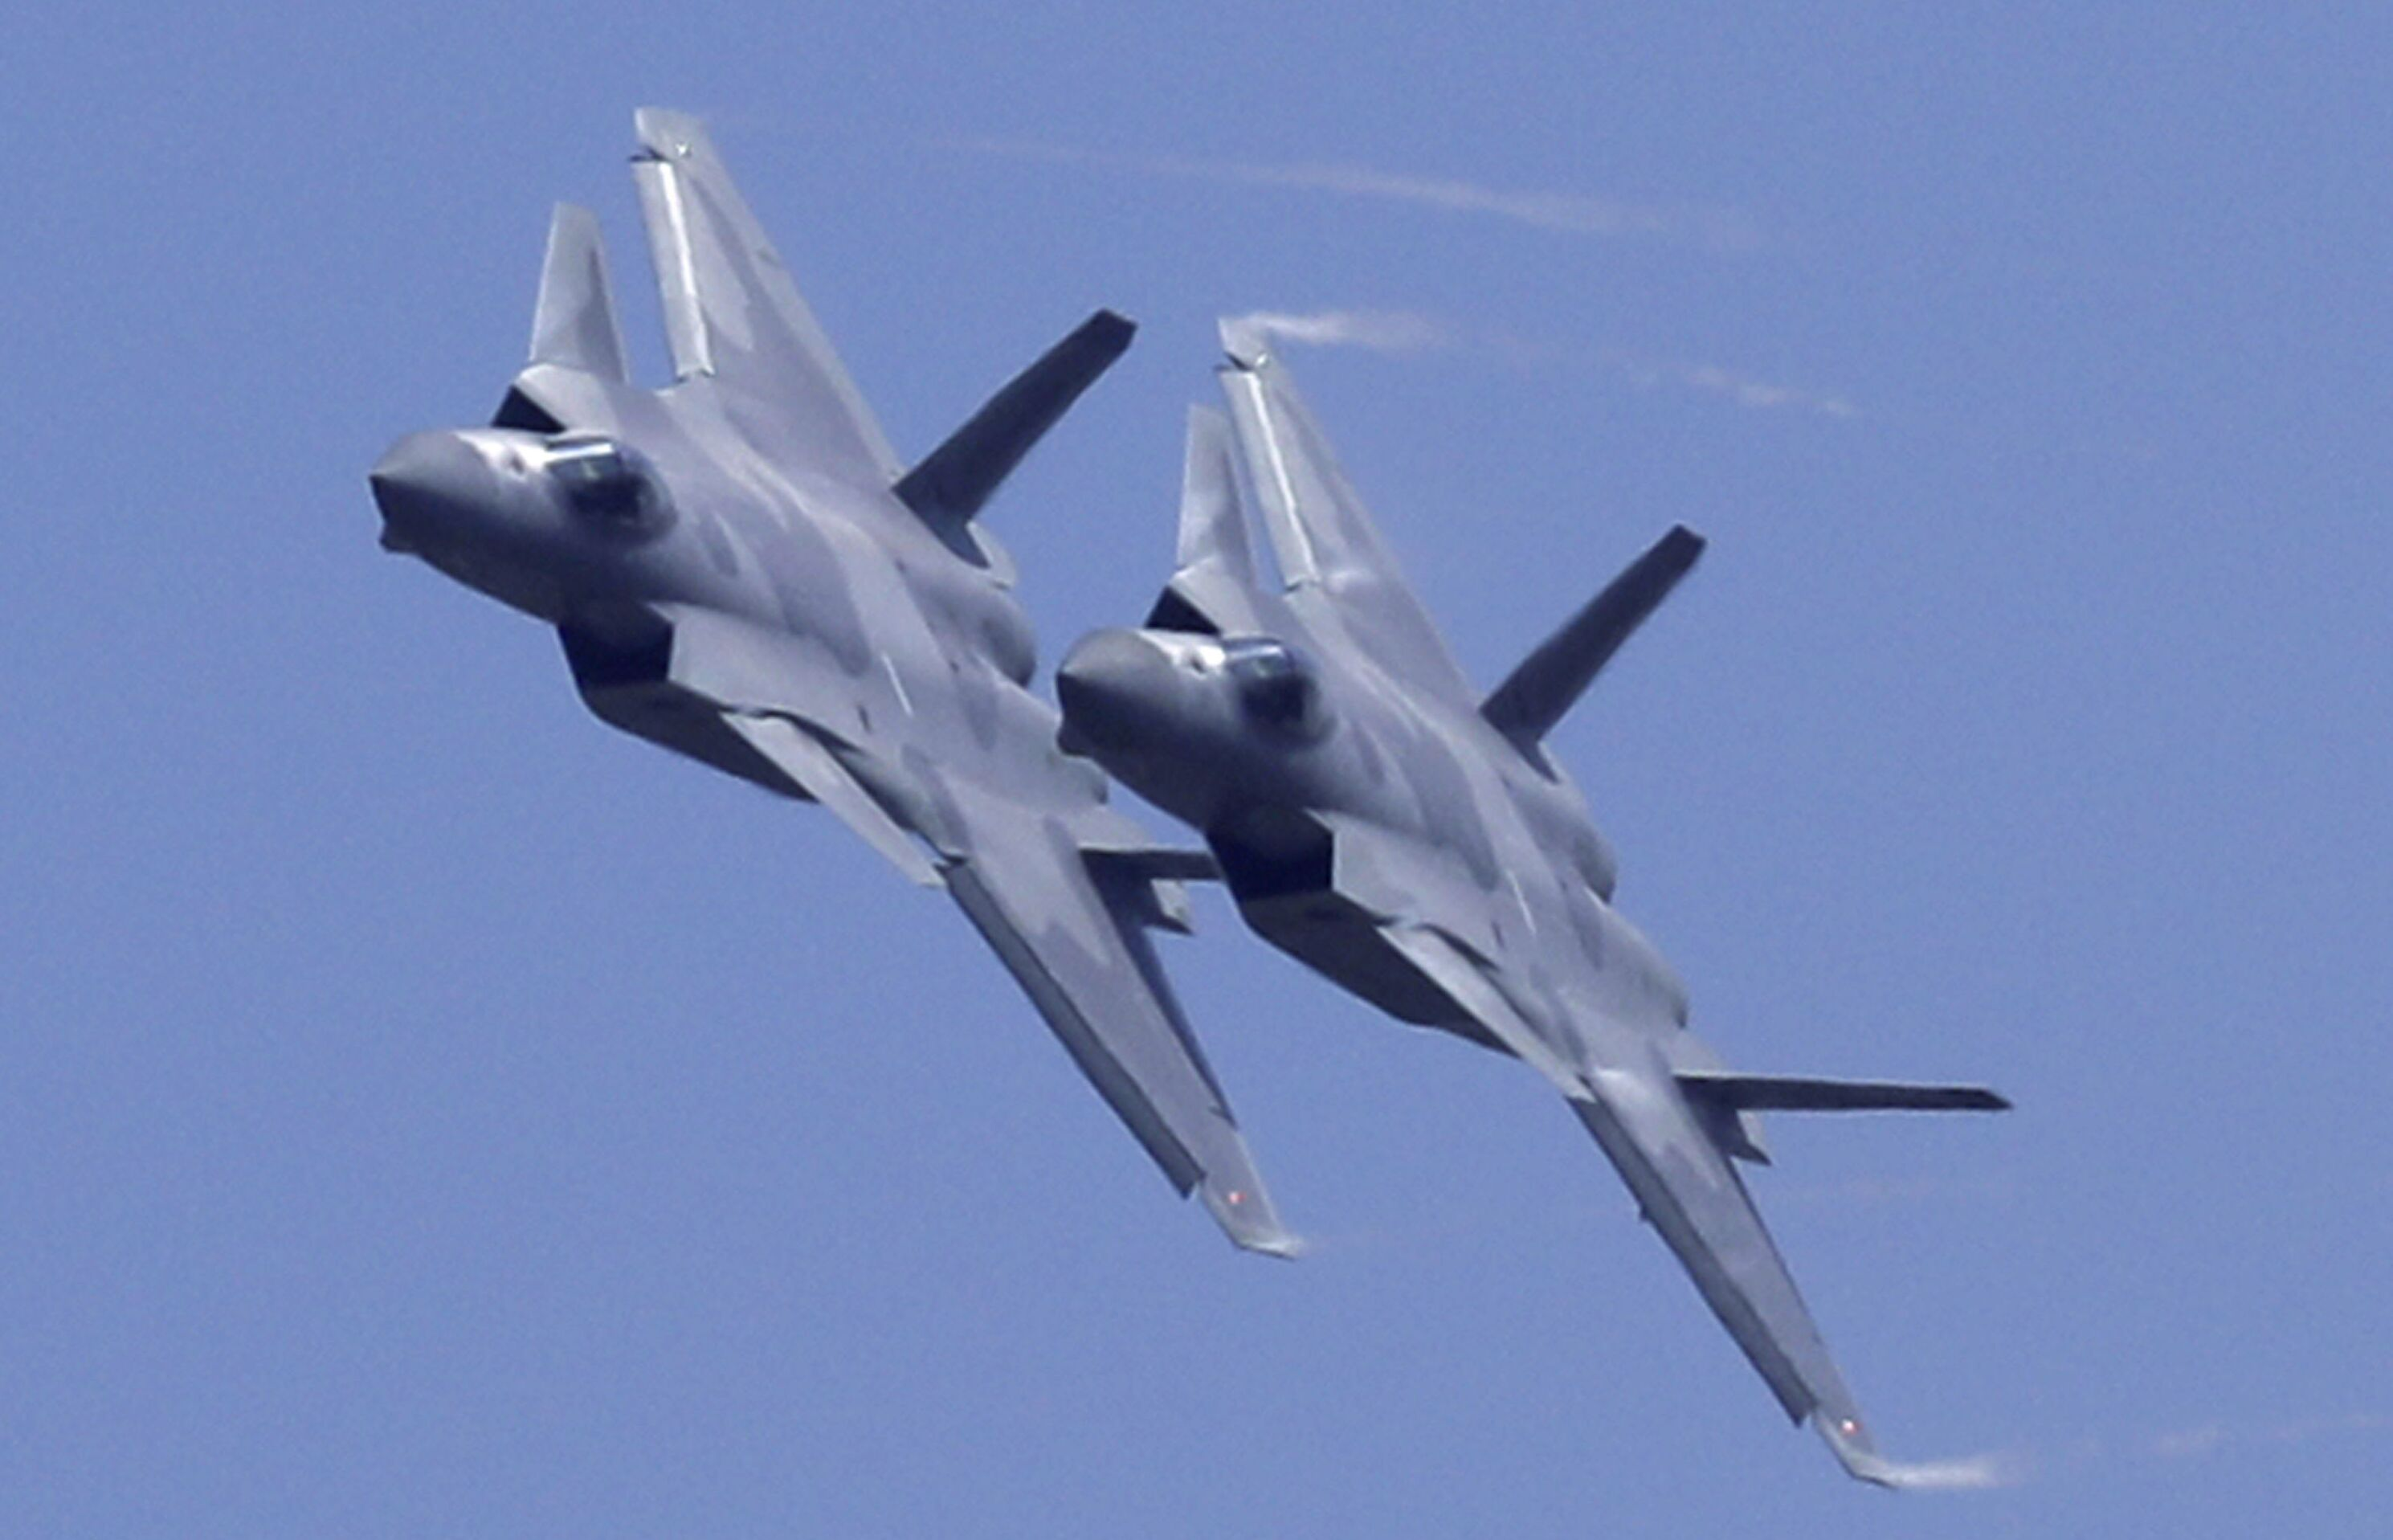 Two J-20 stealth fighter jets of the Chinese People's Liberation Army (PLA) Air Force performs during the 12th China International Aviation and Aerospace Exhibition, also known as Airshow China 2018, Tuesday, Nov. 6, 2018, in Zhuhai city, south China's Guangdong province